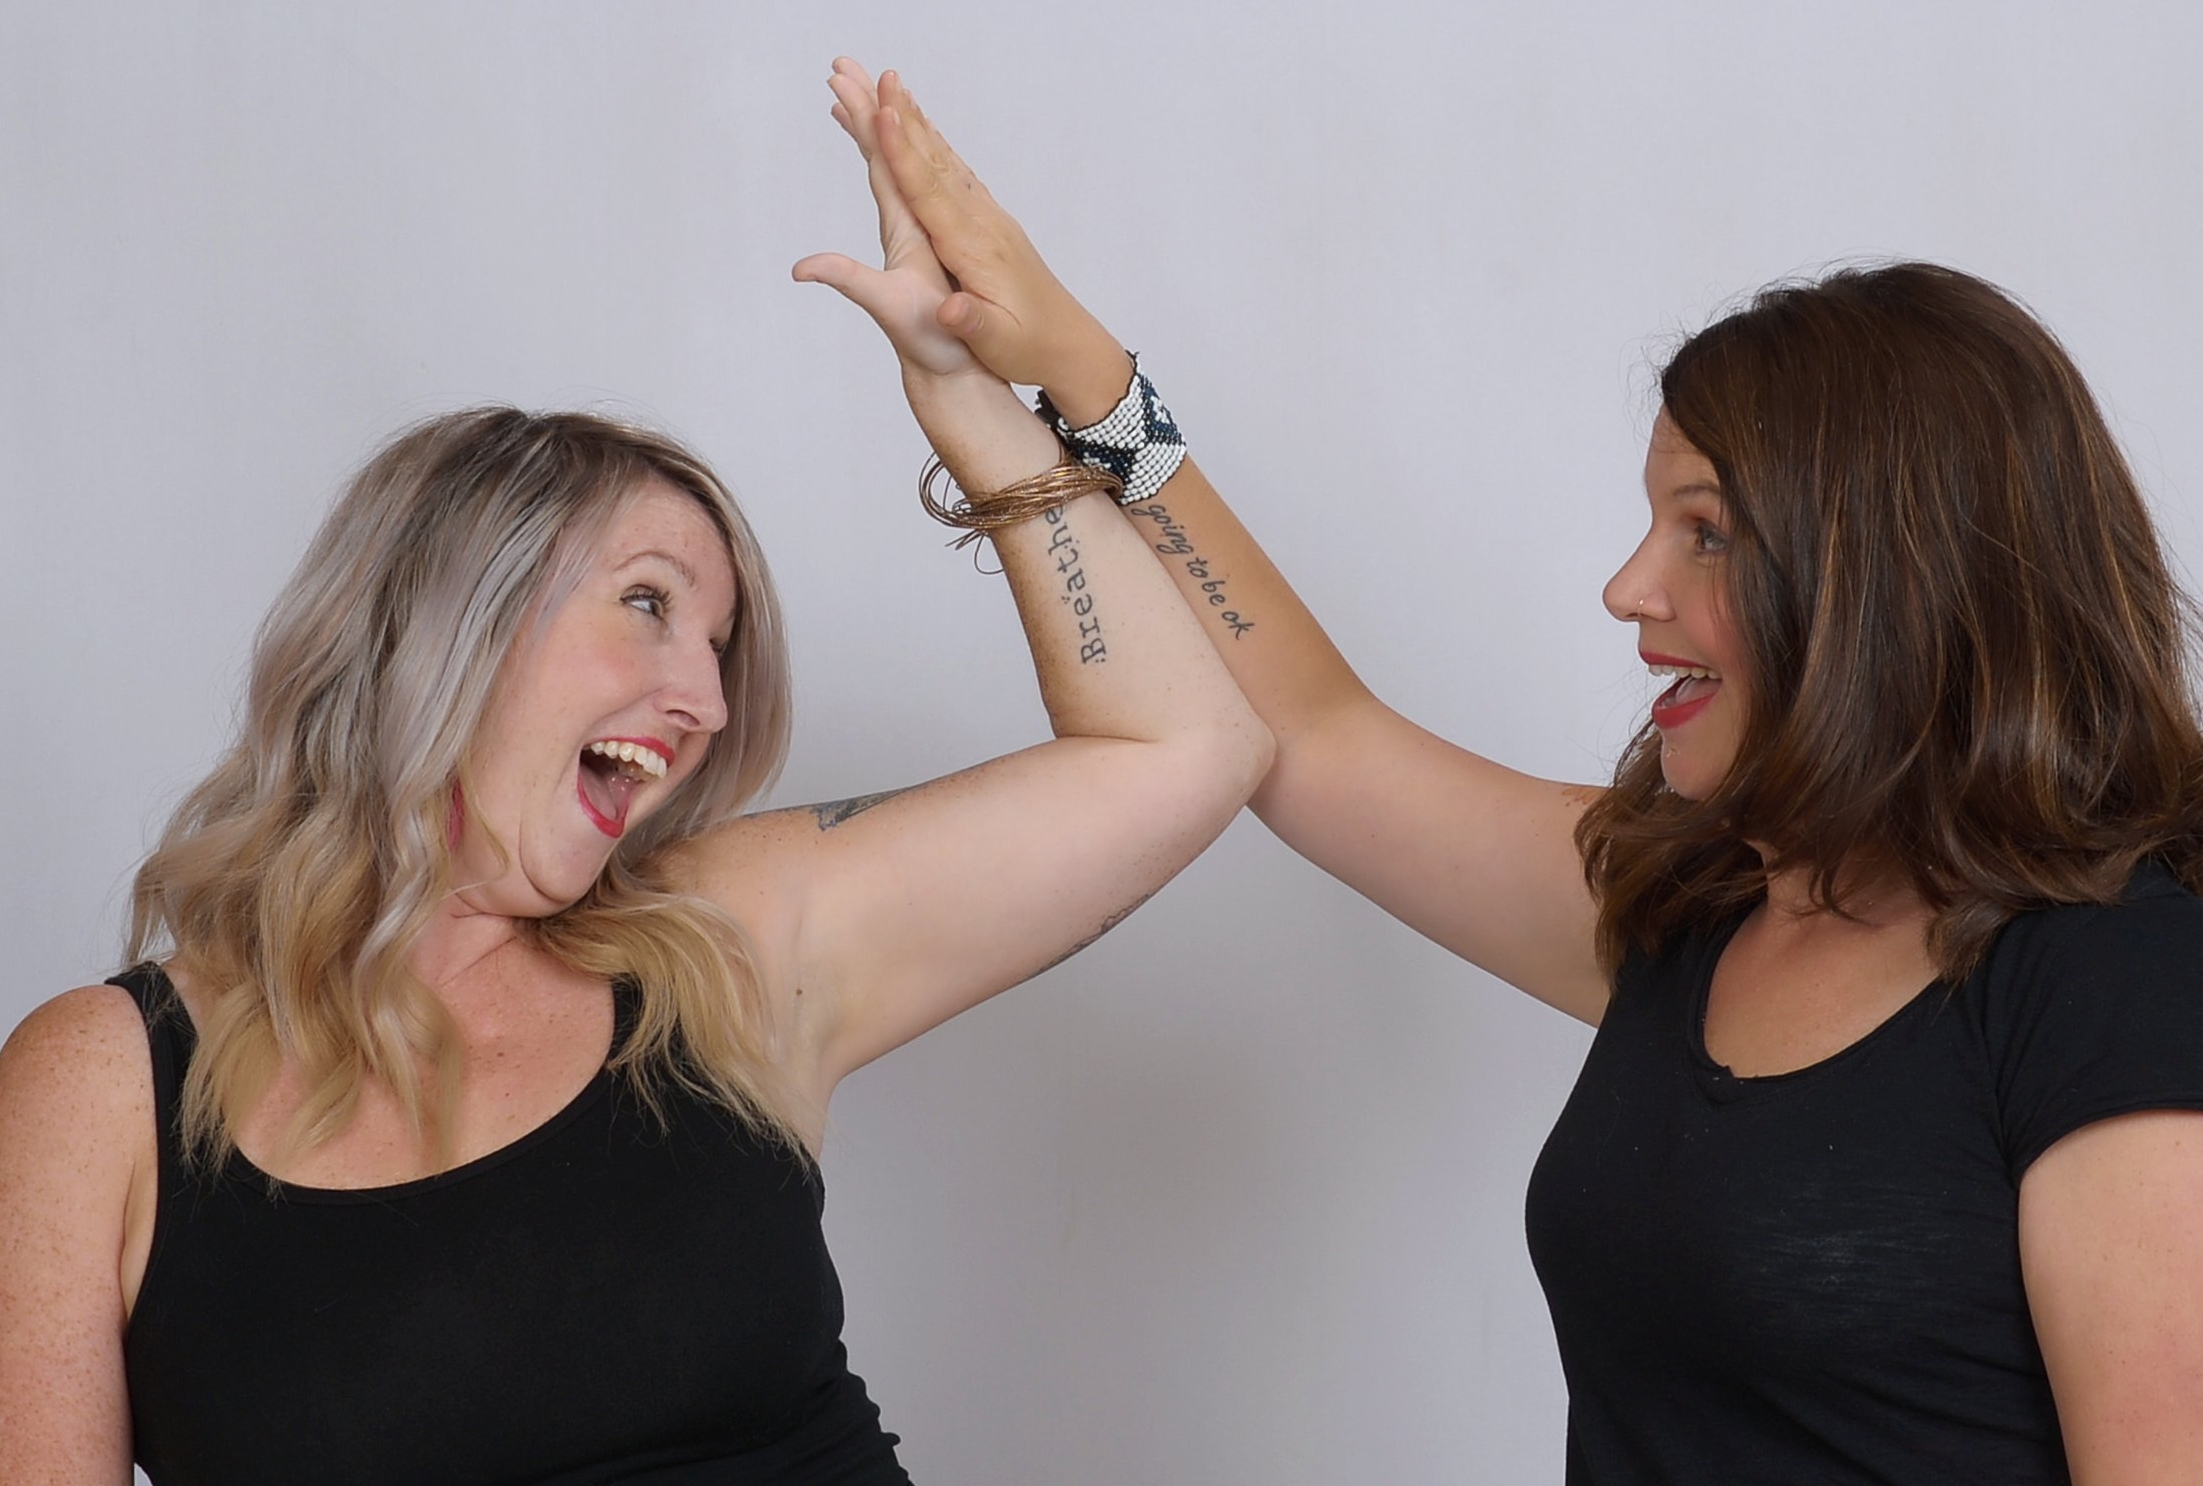 MEET JEN & ALISE - Jen and Alise have been attending births for over 25 years combined. With laughter and a touch of vulnerability, they want normalize, and encourage you in your transition to parenthood. They are here to help you prepare for the ups and downs of growing a baby, birthing a baby, and parenting